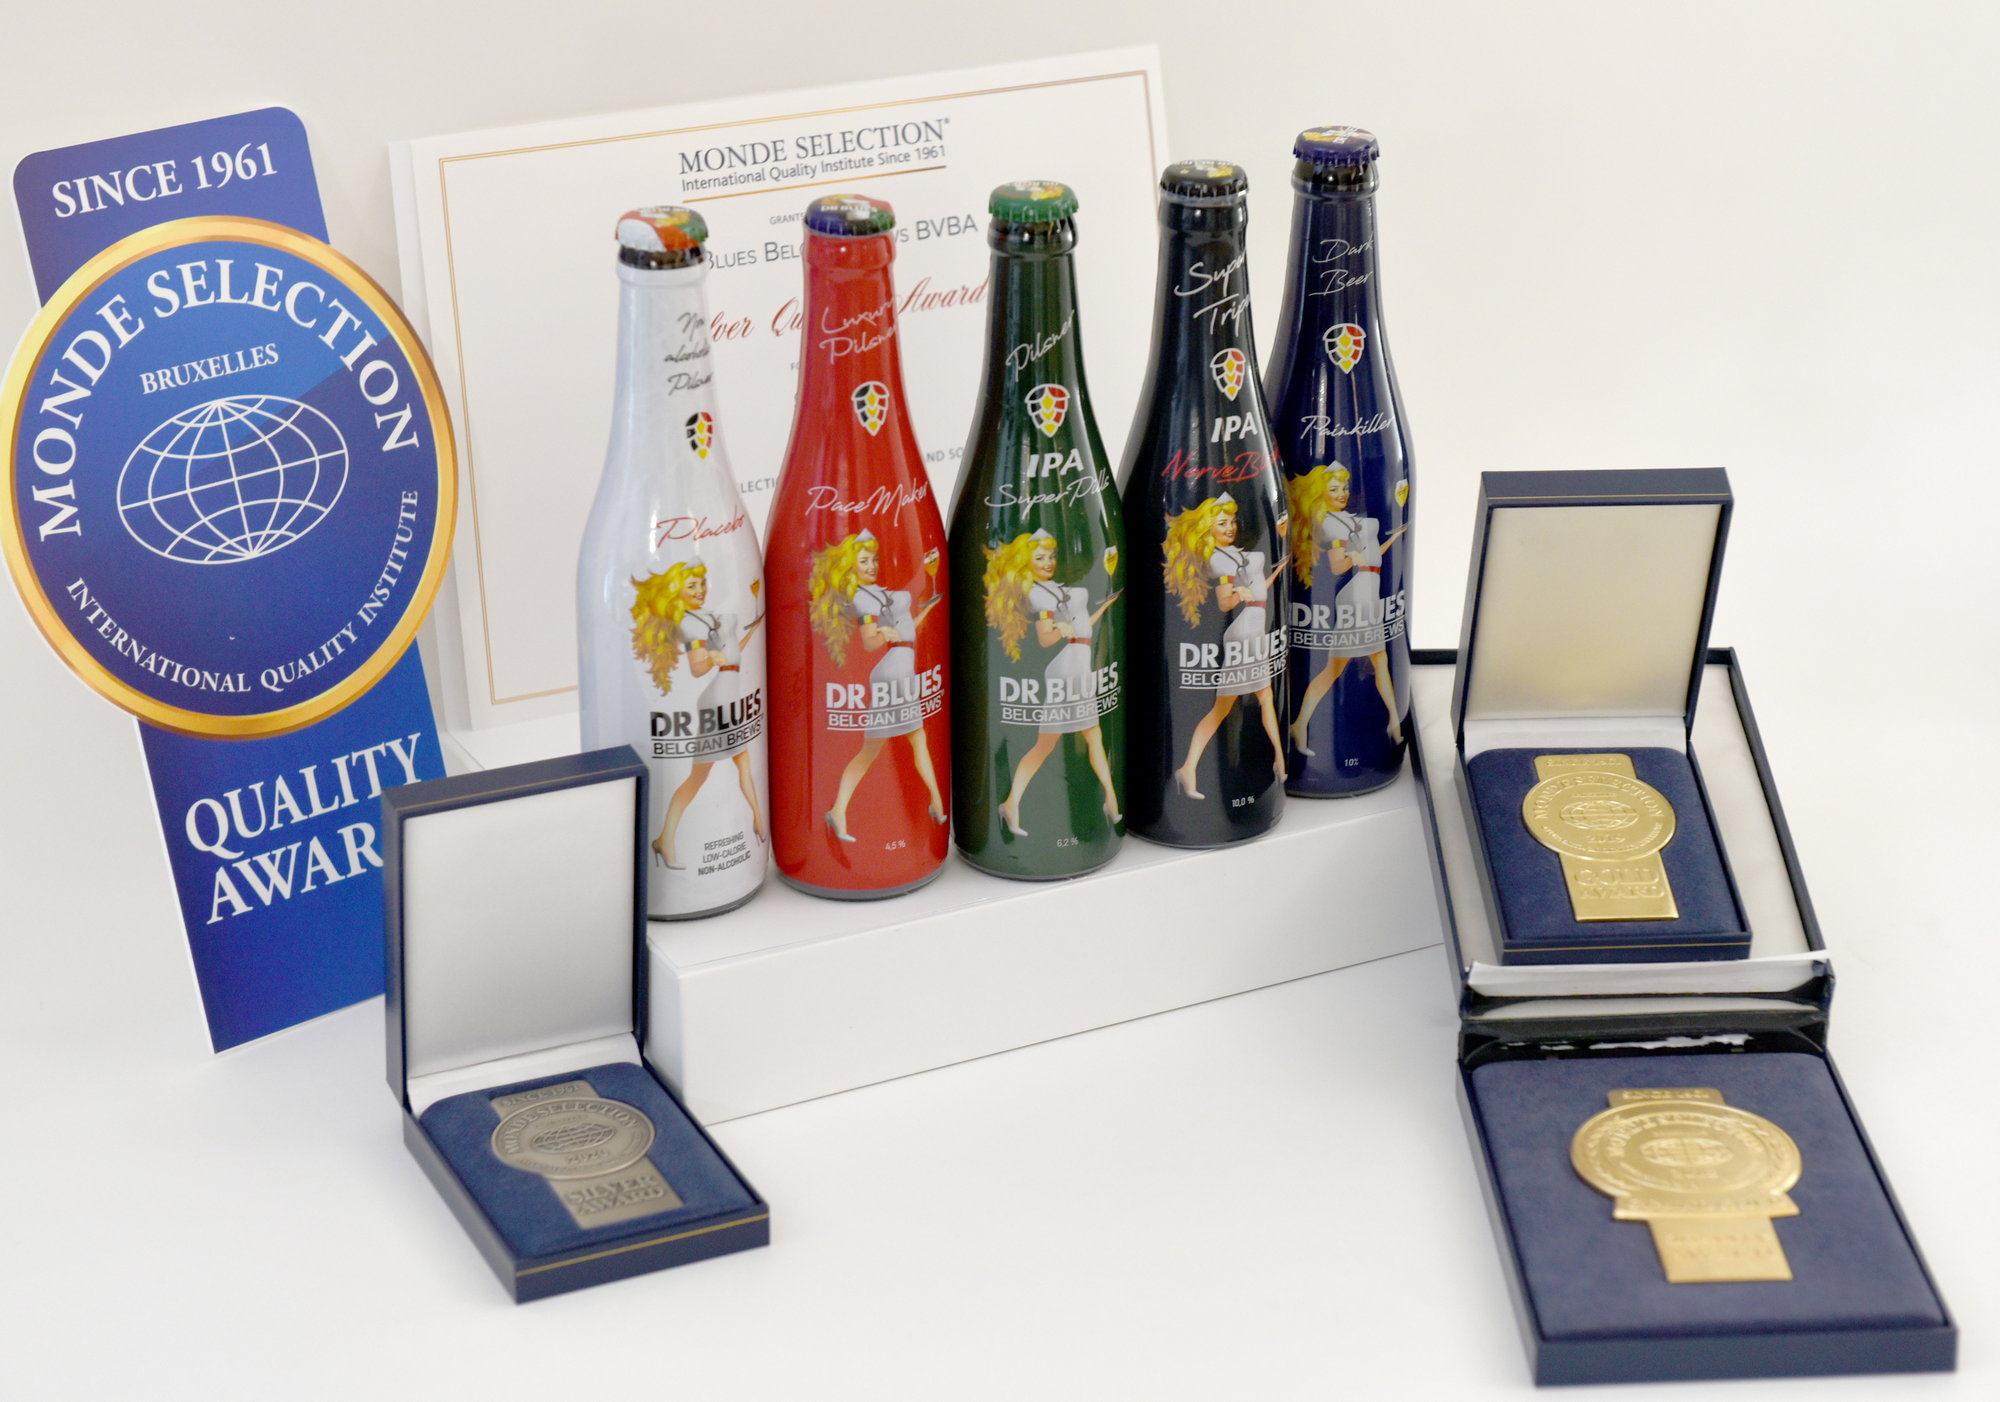 Monde Selection Quality Award for beers